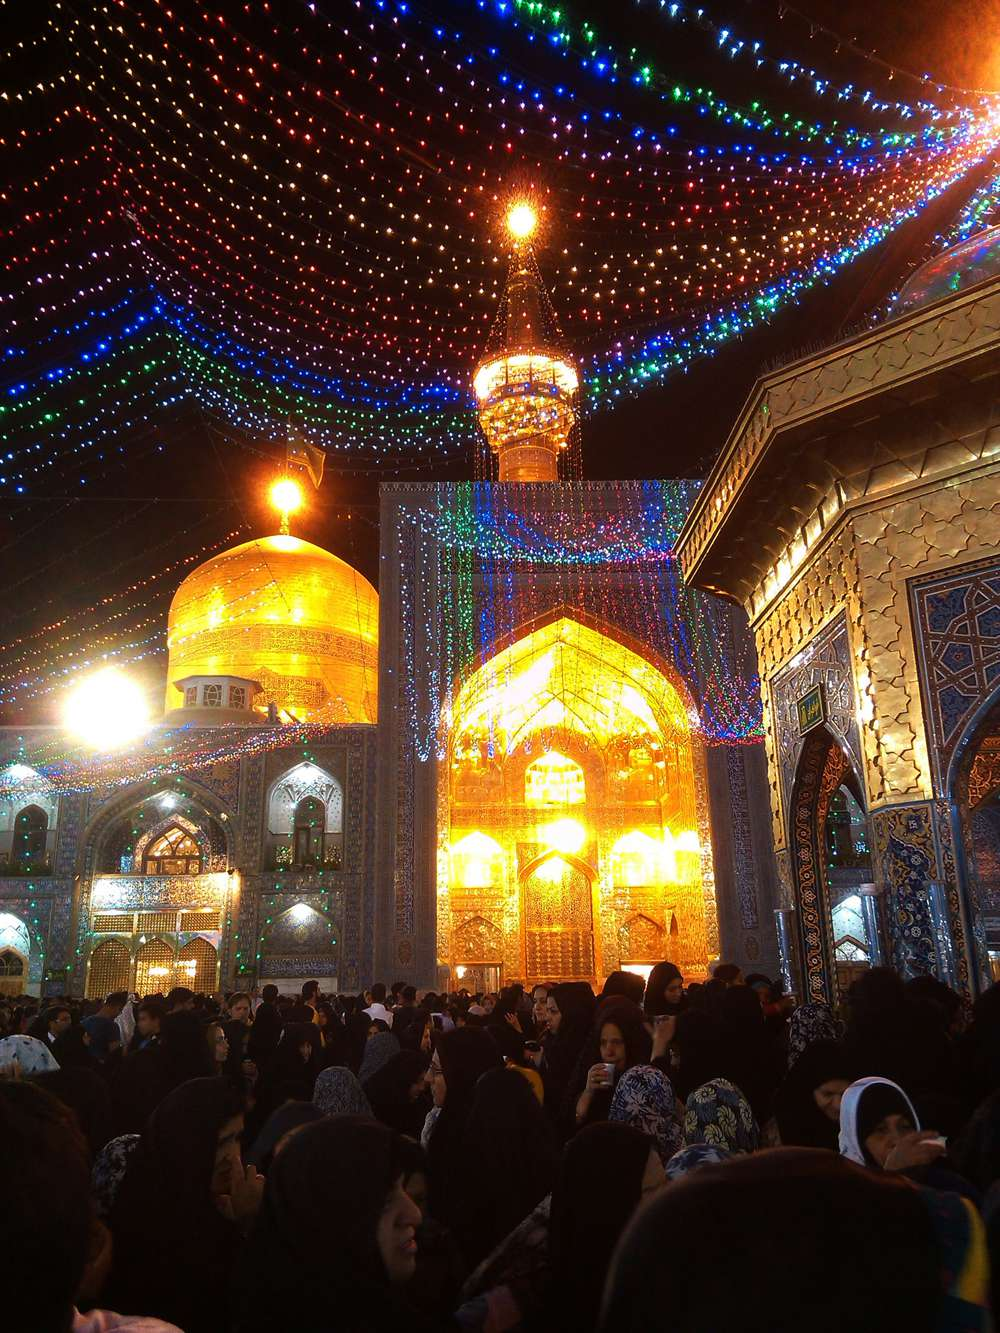 The shrine of Imam Reza is illuminated on the night of Eid-e-Ghadeer in Mashhad (Khorasan). According to Shia Islam, Ghadeer is the day when Prophet Muhammad appointed Imam Ali as his successor. The Golden Dome on top of Imam Ridha's tomb is the most prominent symbol of Mashhad.